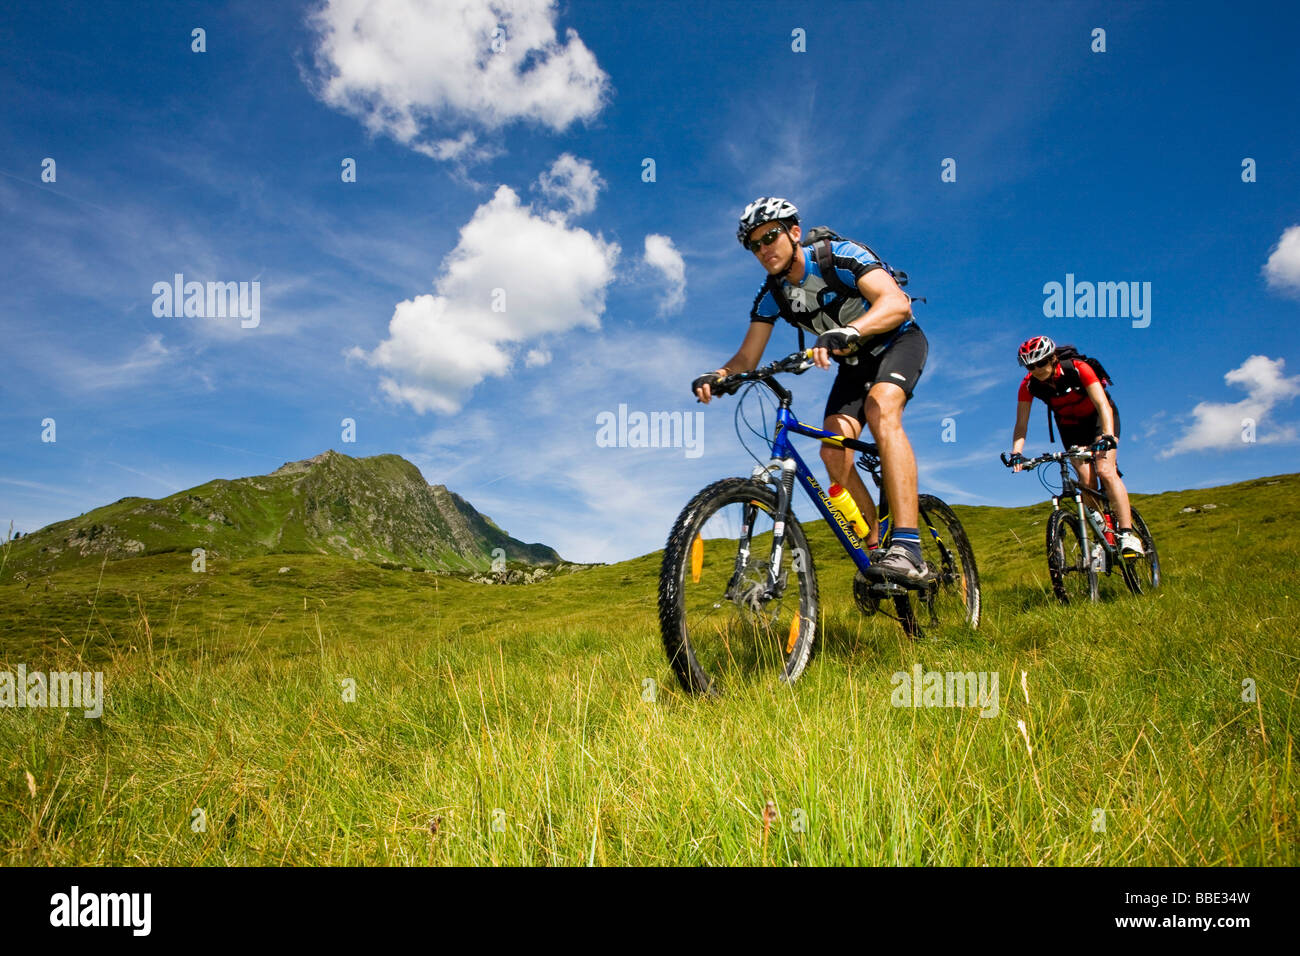 Mountain bikers, Mt kleiner Galtenberg, Alpbachtal, Kitzbuehl Alps, North Tyrol, Austria, Europe - Stock Image